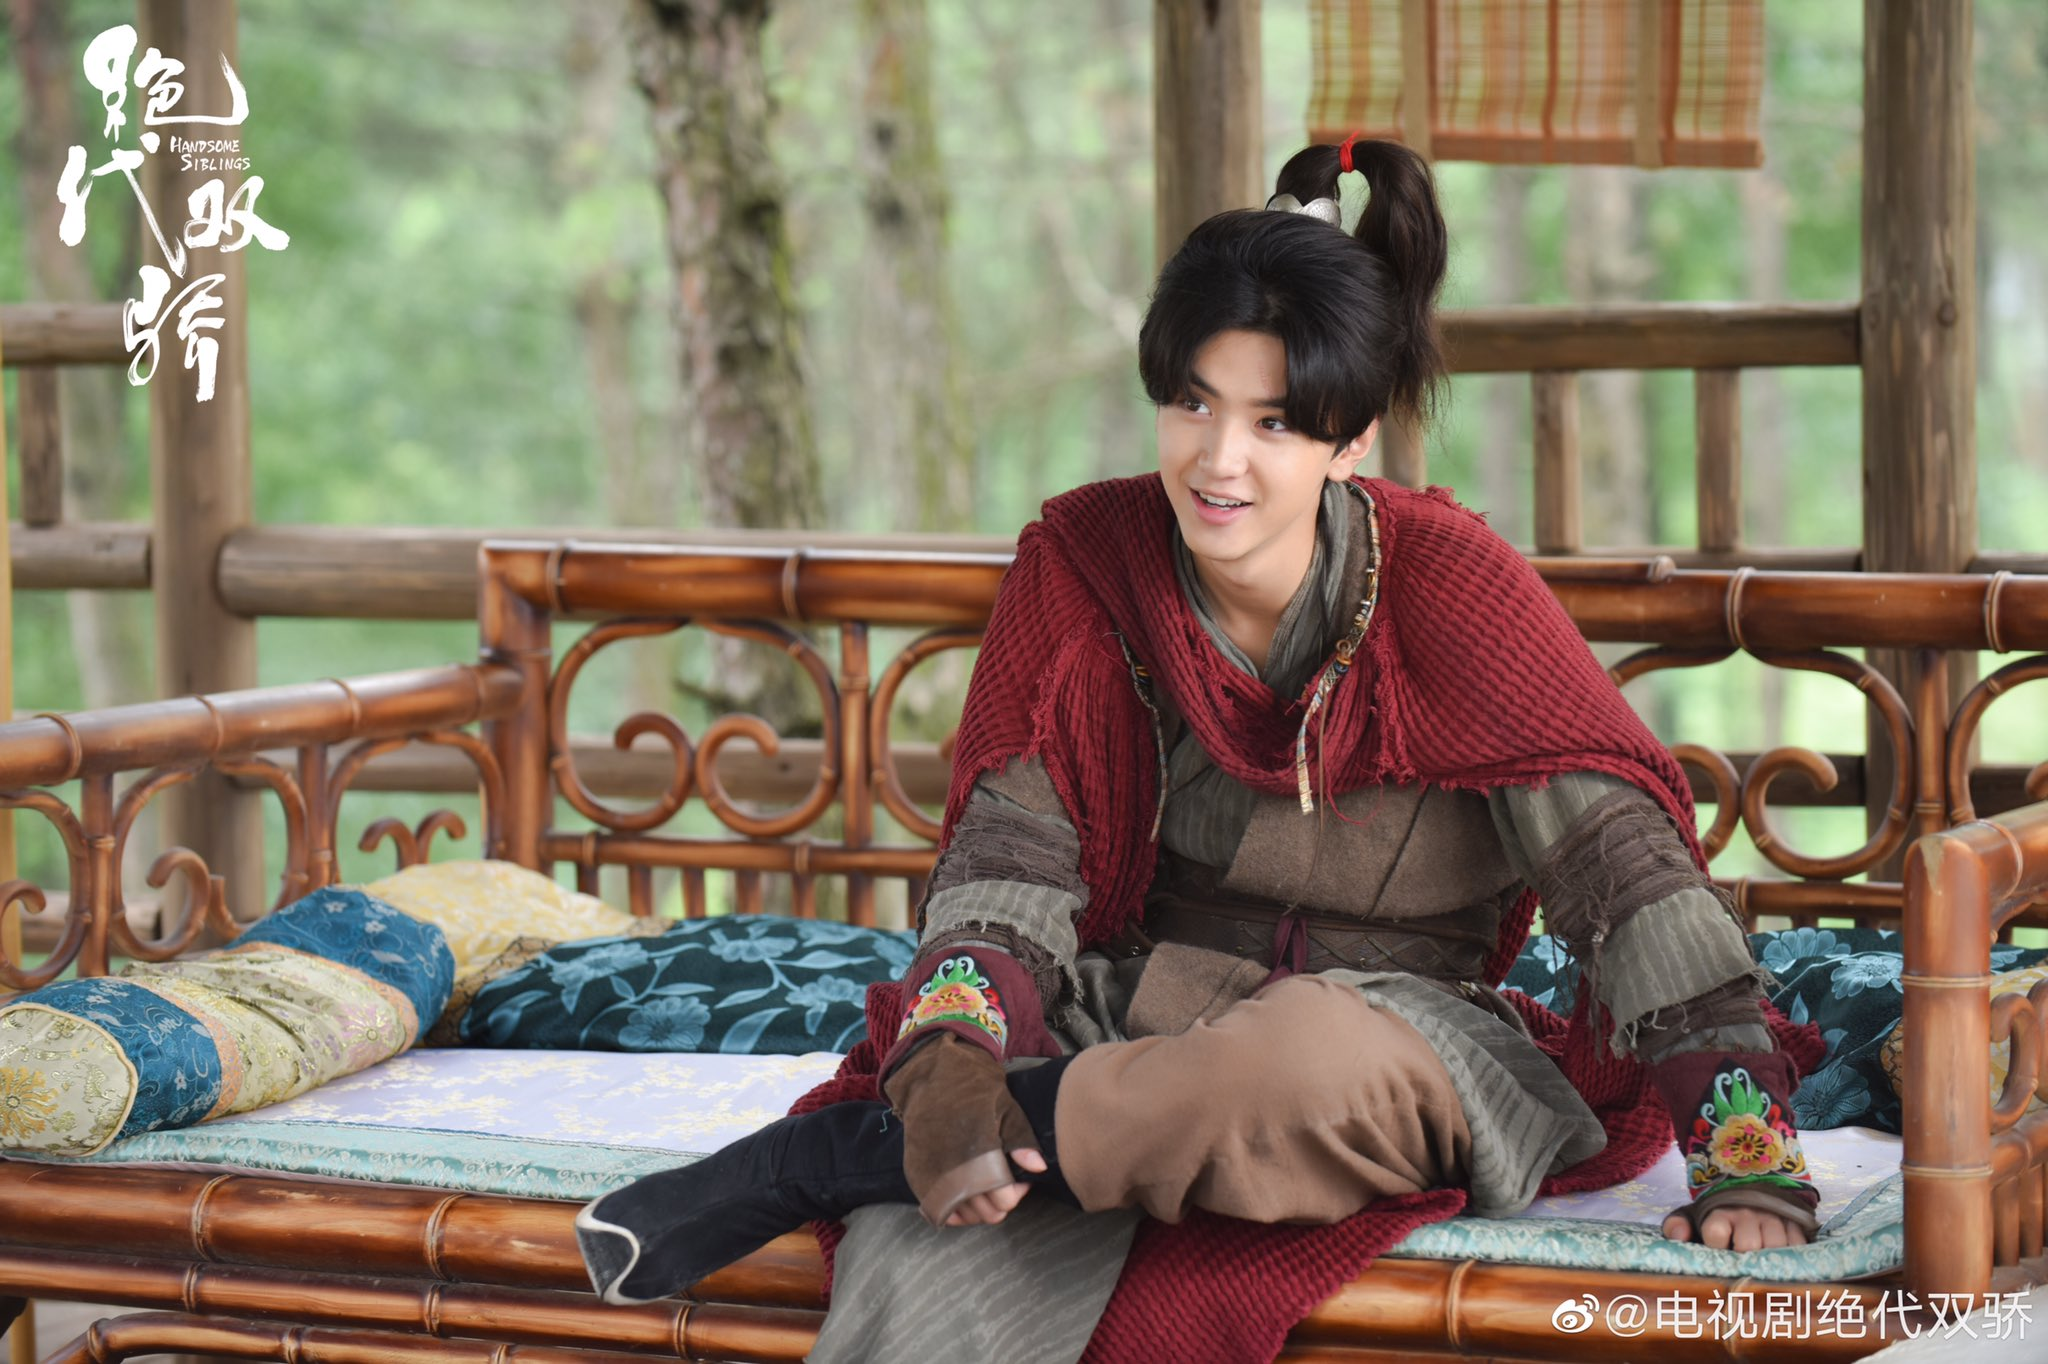 Handsome Siblings: Xiao Yu'er on a bed